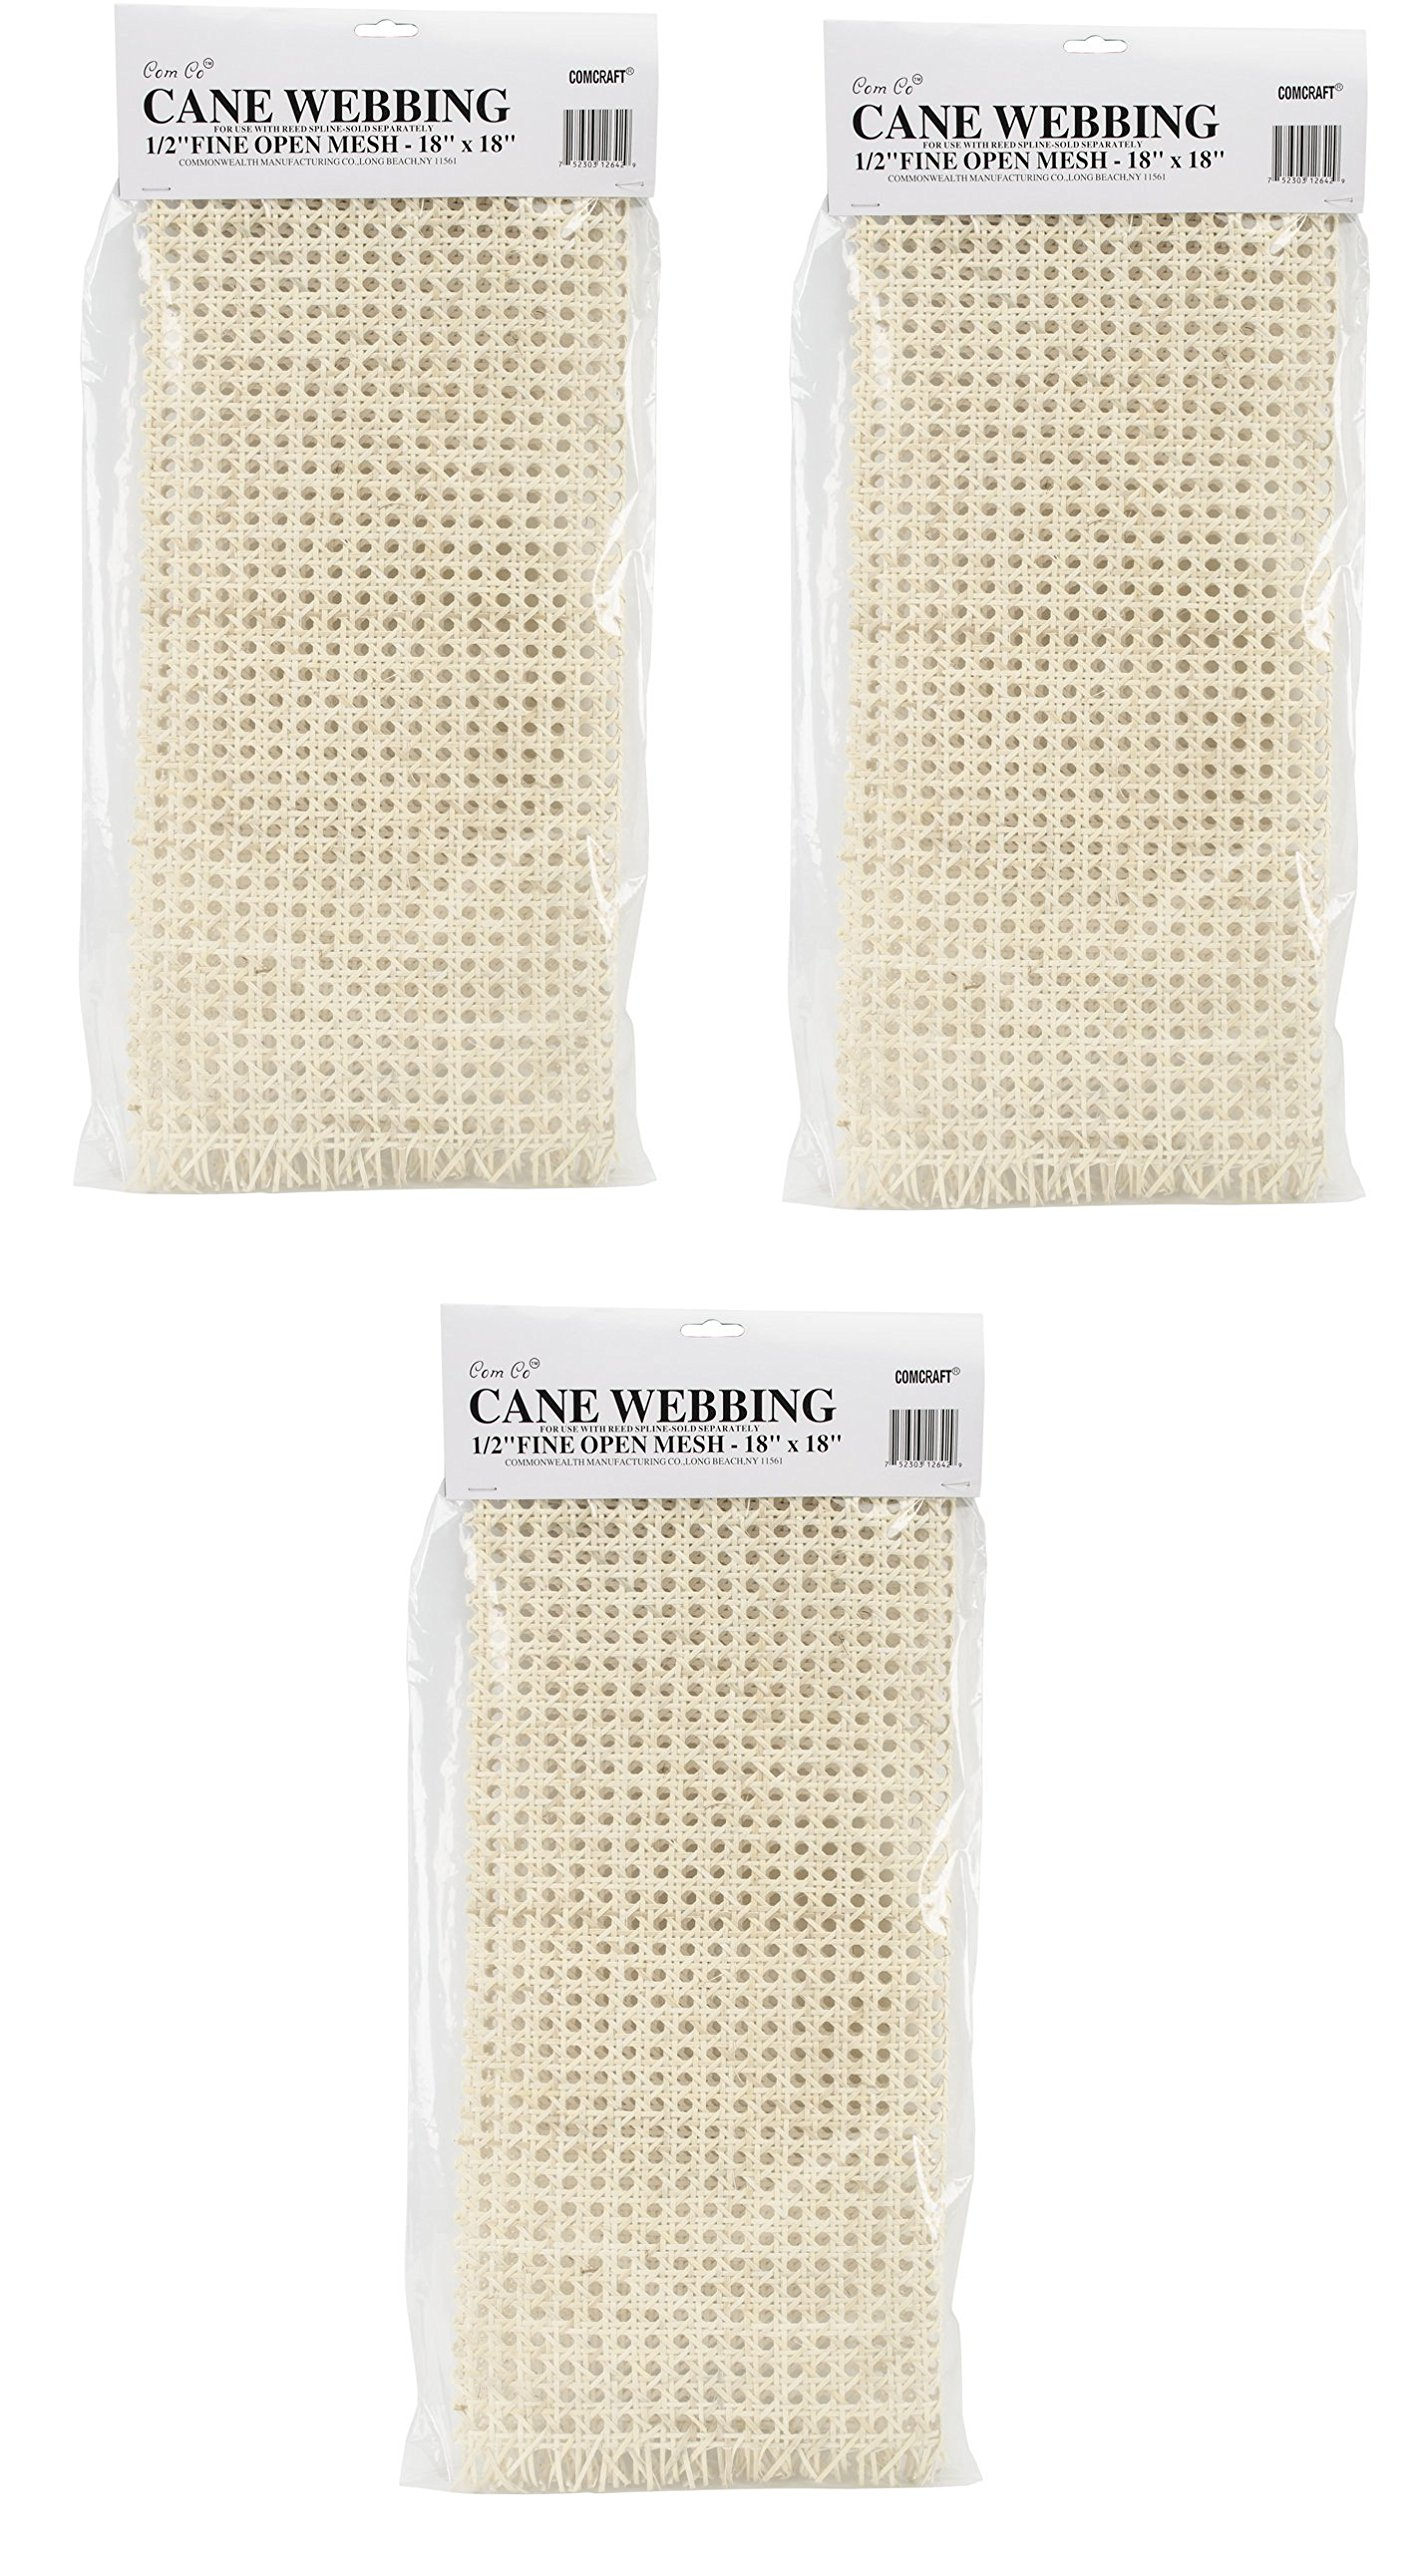 Commonwealth Basket Cane Webbing 1/2-Inch Fine Open Mesh 18-Inch by 18-Inch, Natural (3 pack) by Commonwealth Basket